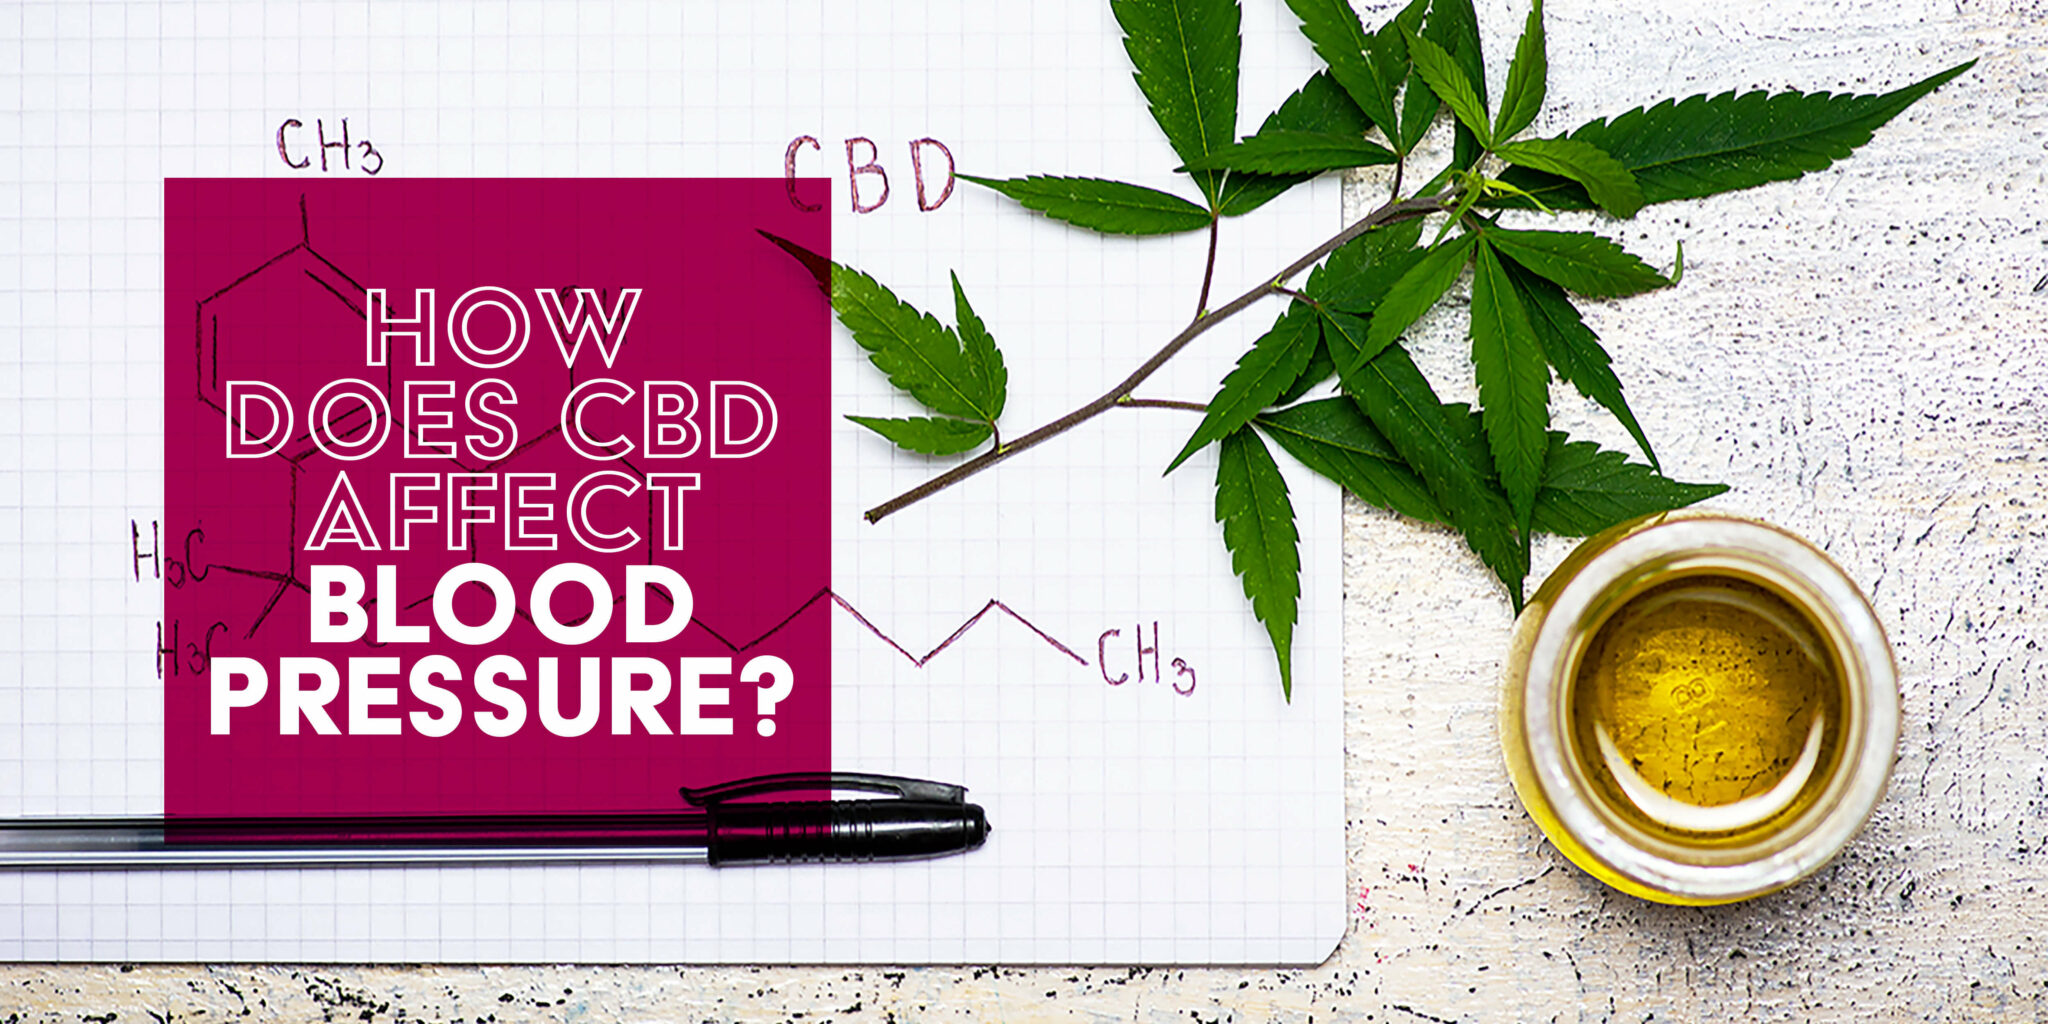 How Does CBD Affect Blood Pressure?